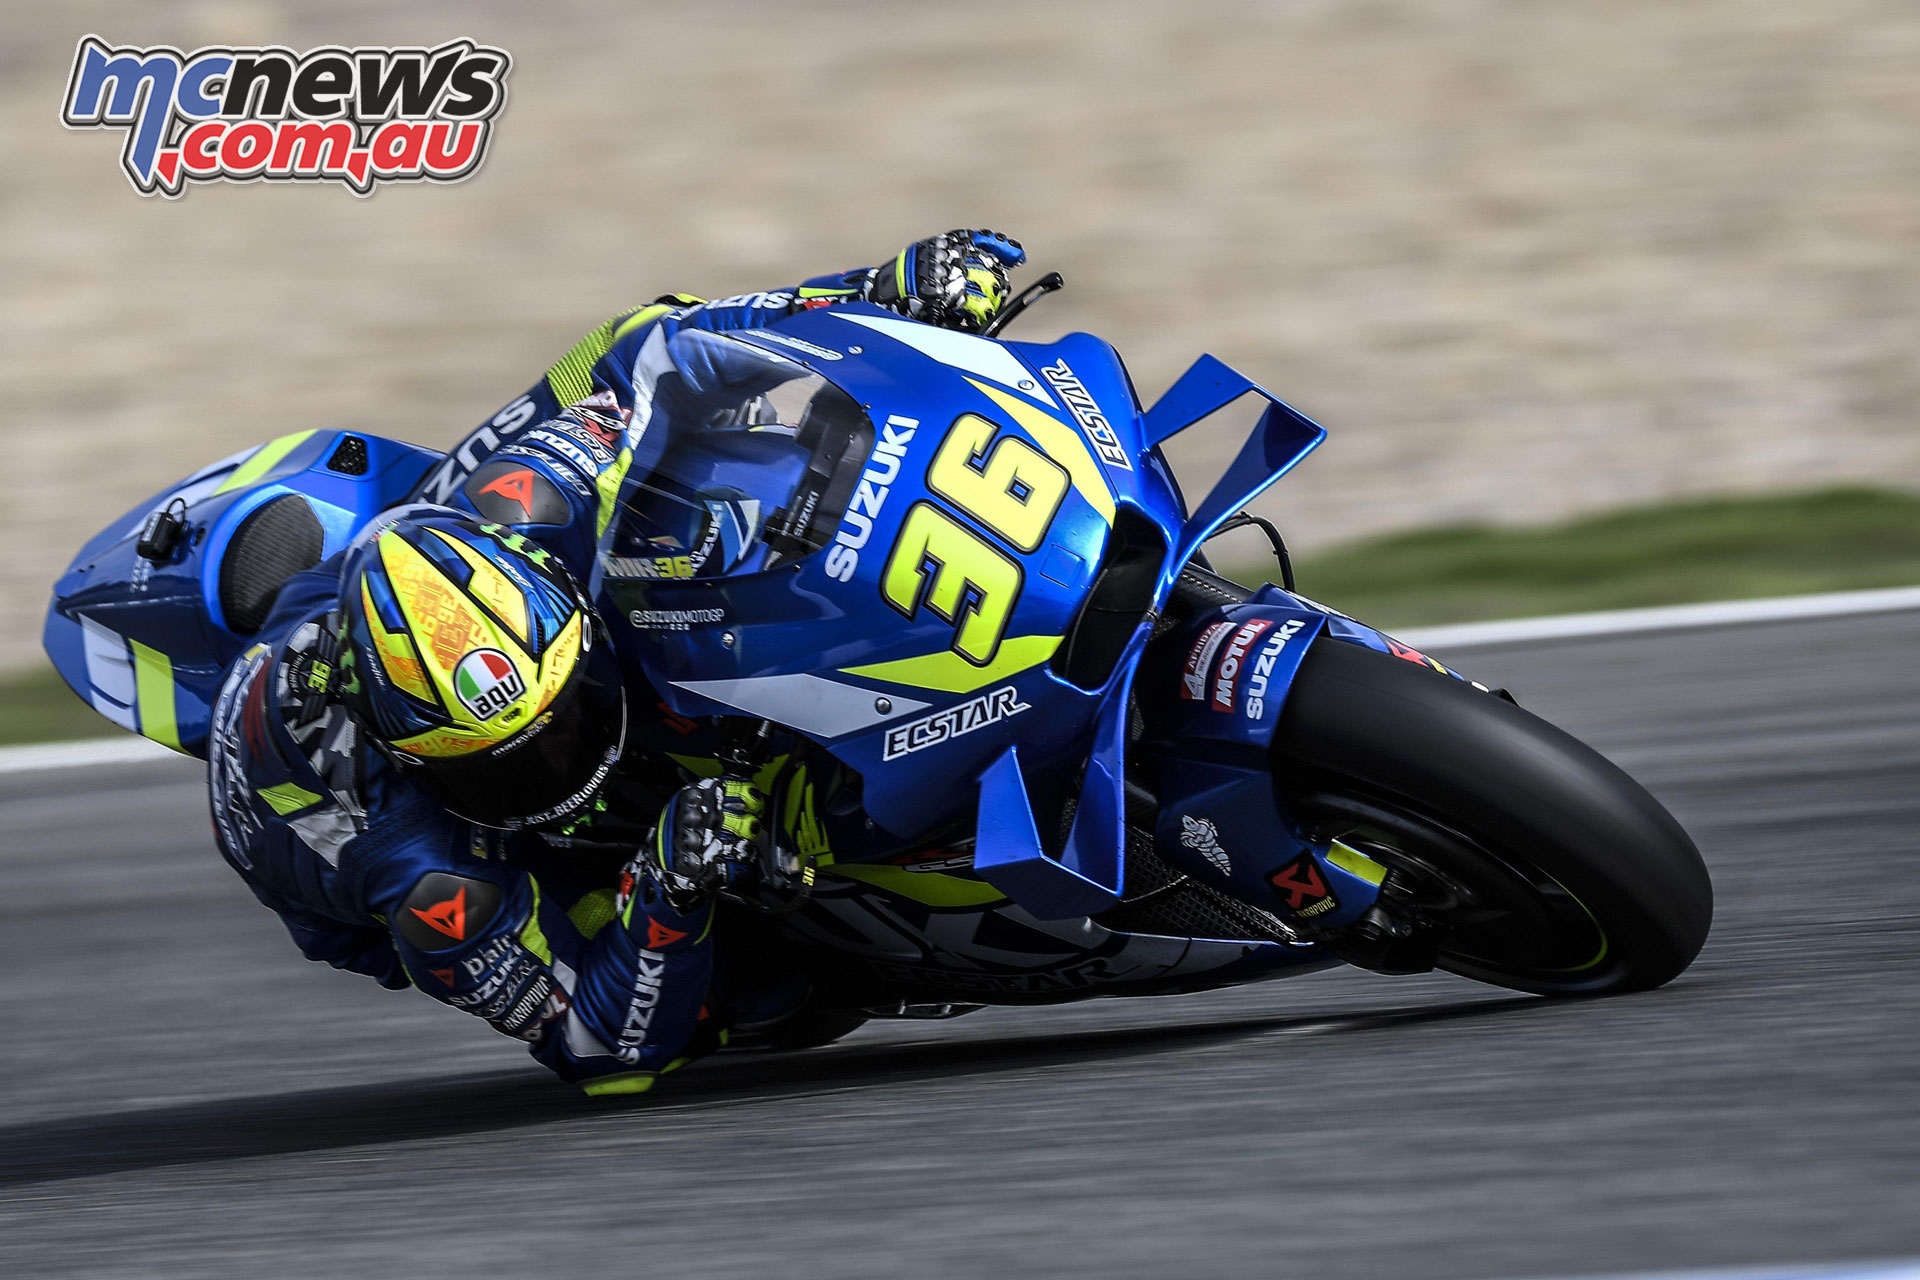 MotoGP Test Jerez D Nov Joan Mir